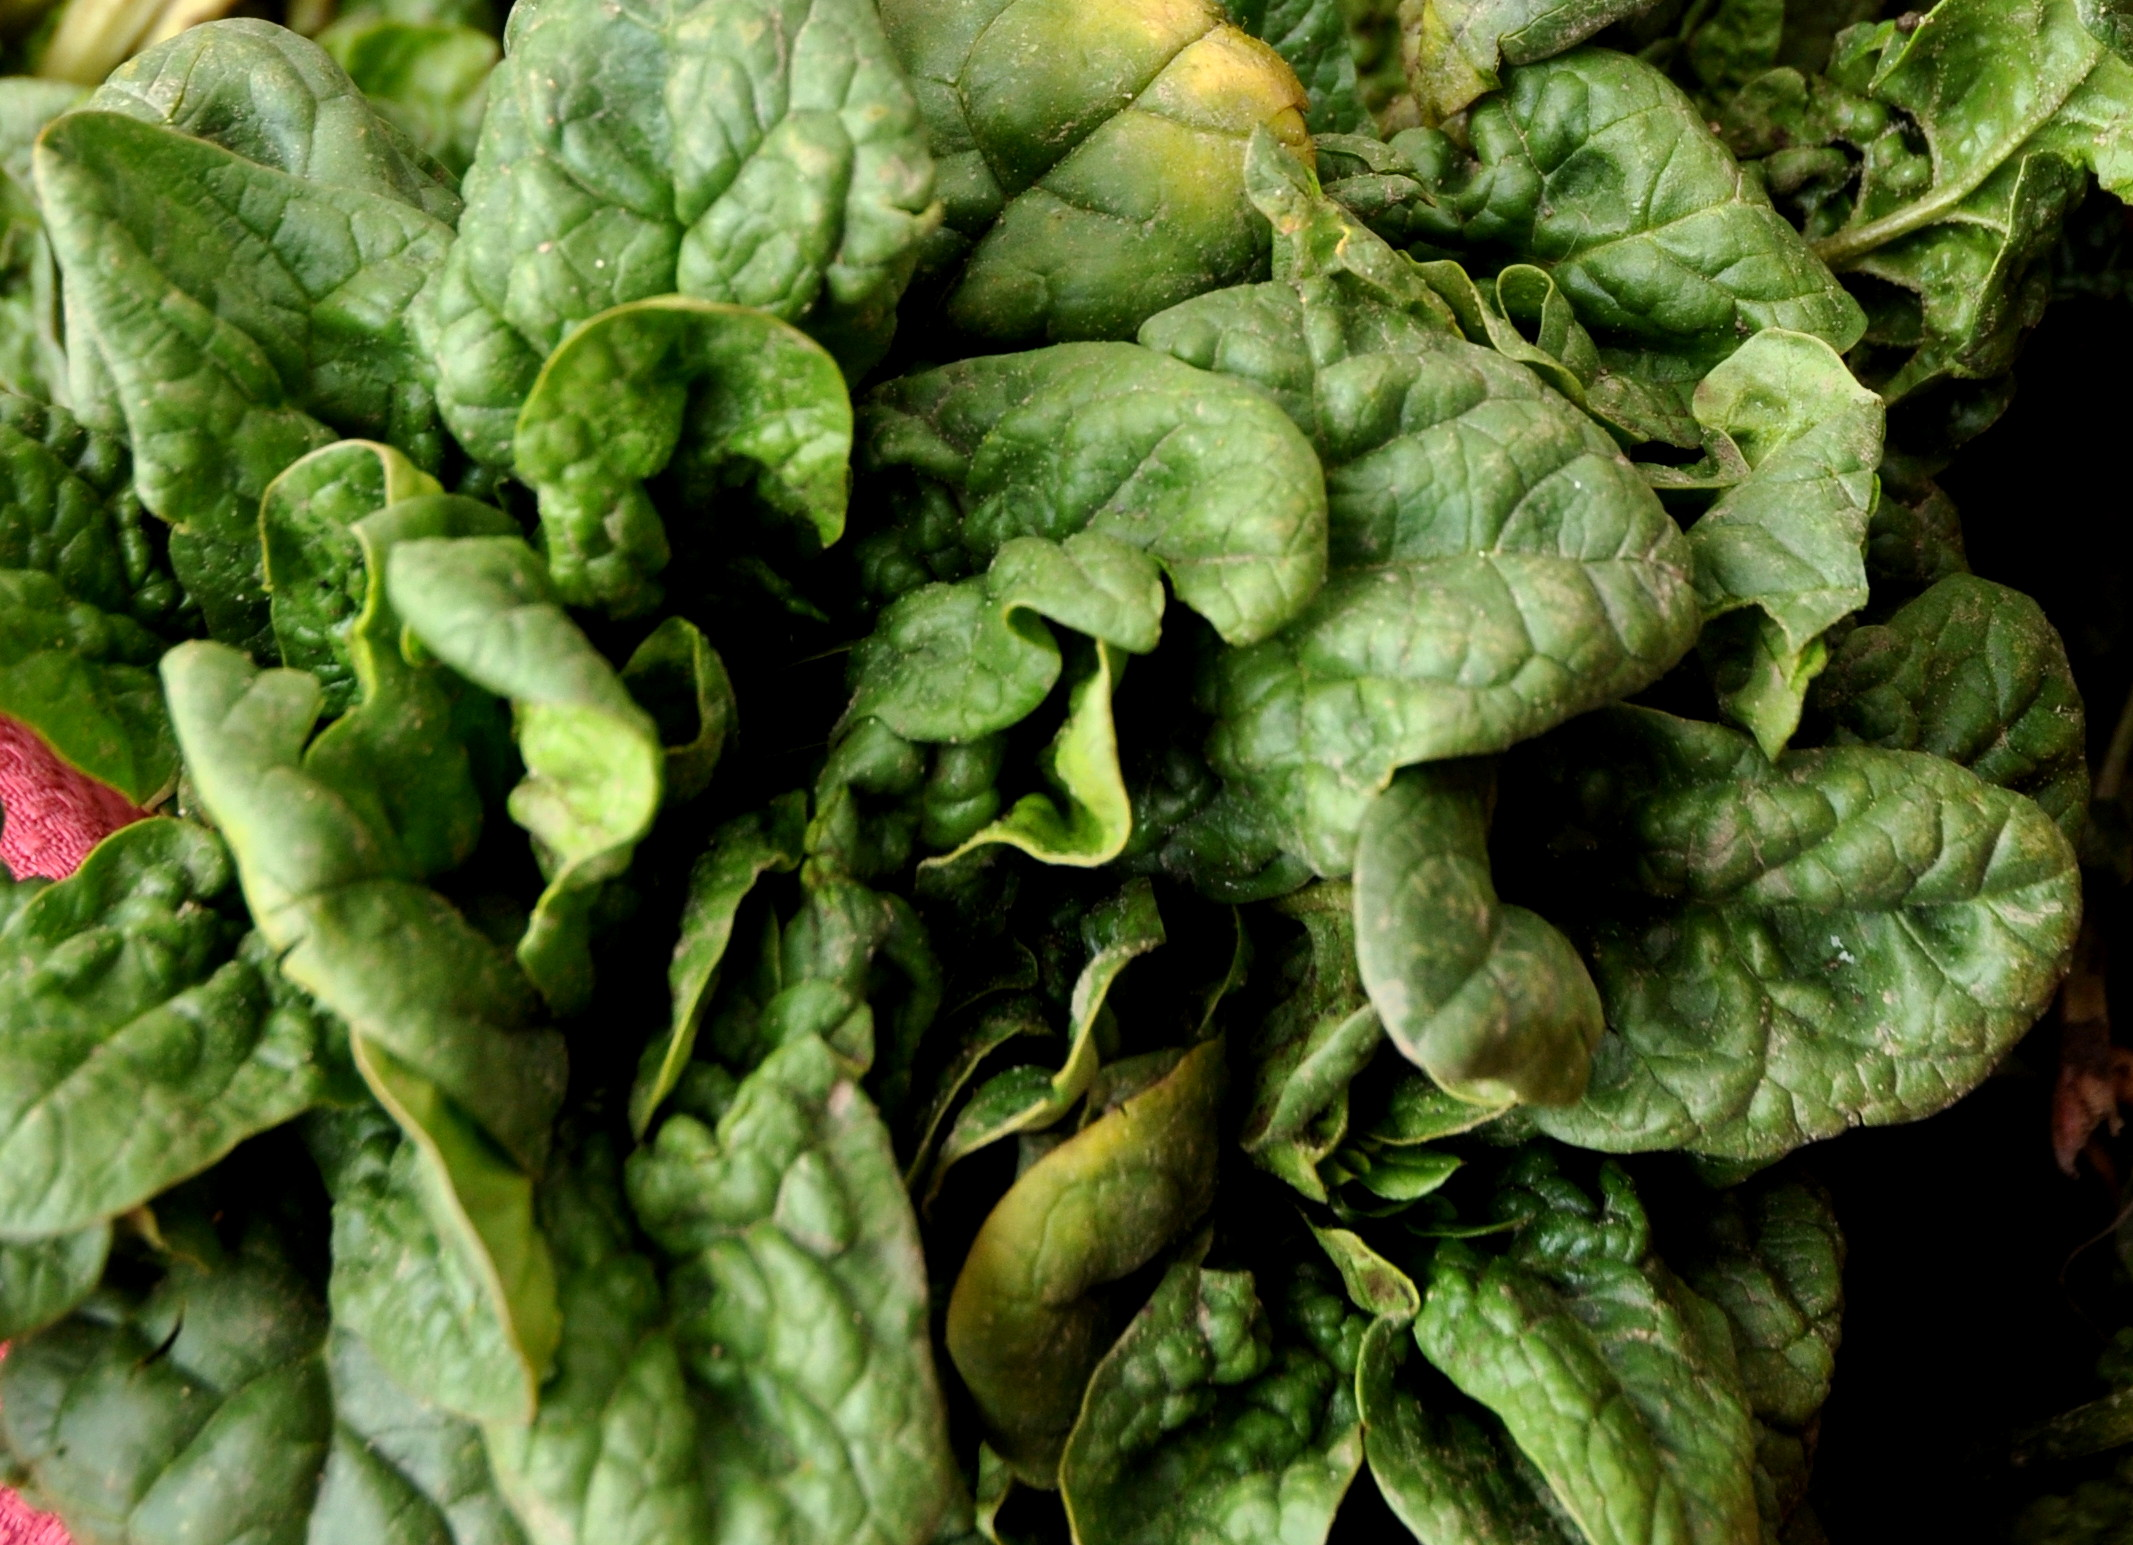 Winter spinach from Nash's Organic Produce. Photo copyright 2013 by Zachary D. Lyons.